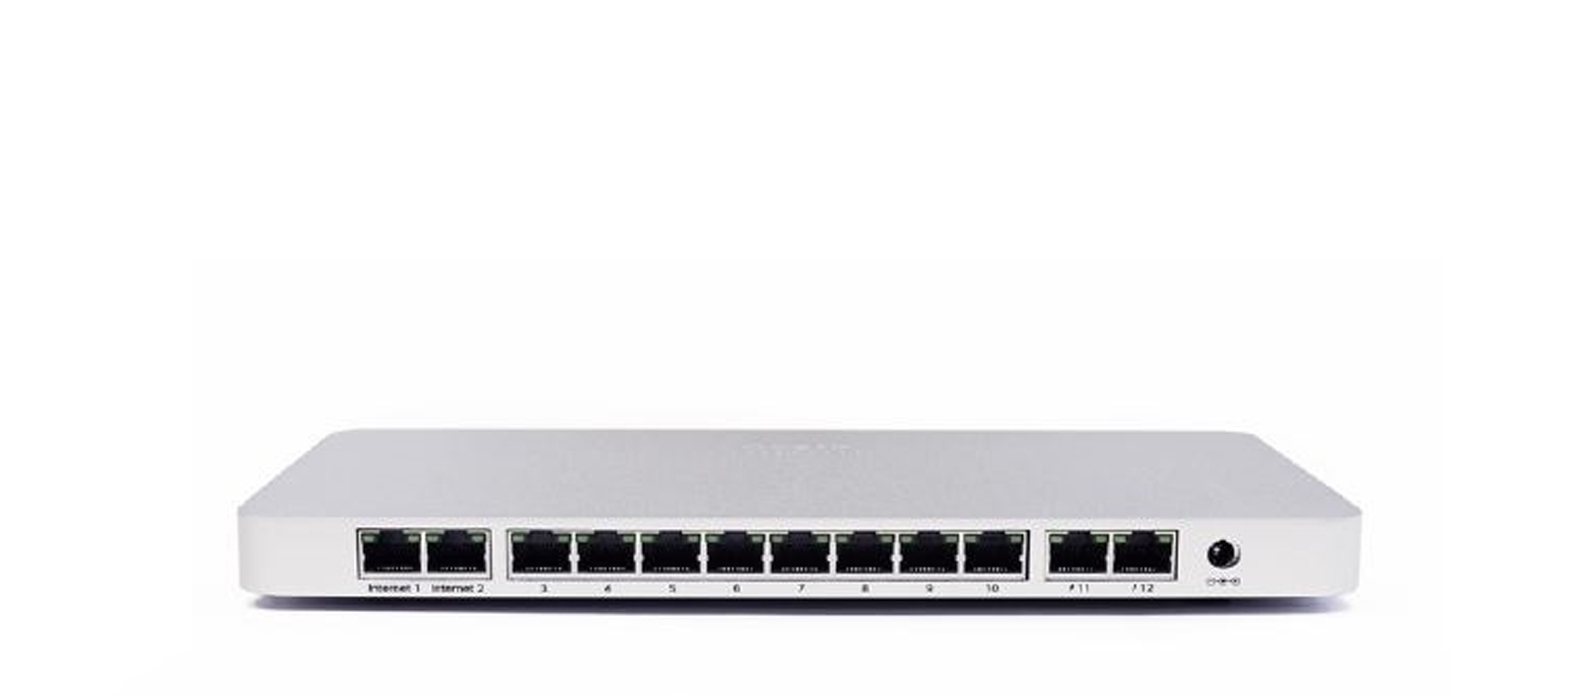 Cisco Meraki MX68 Wireless Firewall w/ Wave 2 WiFi – Meraki MX68 ...